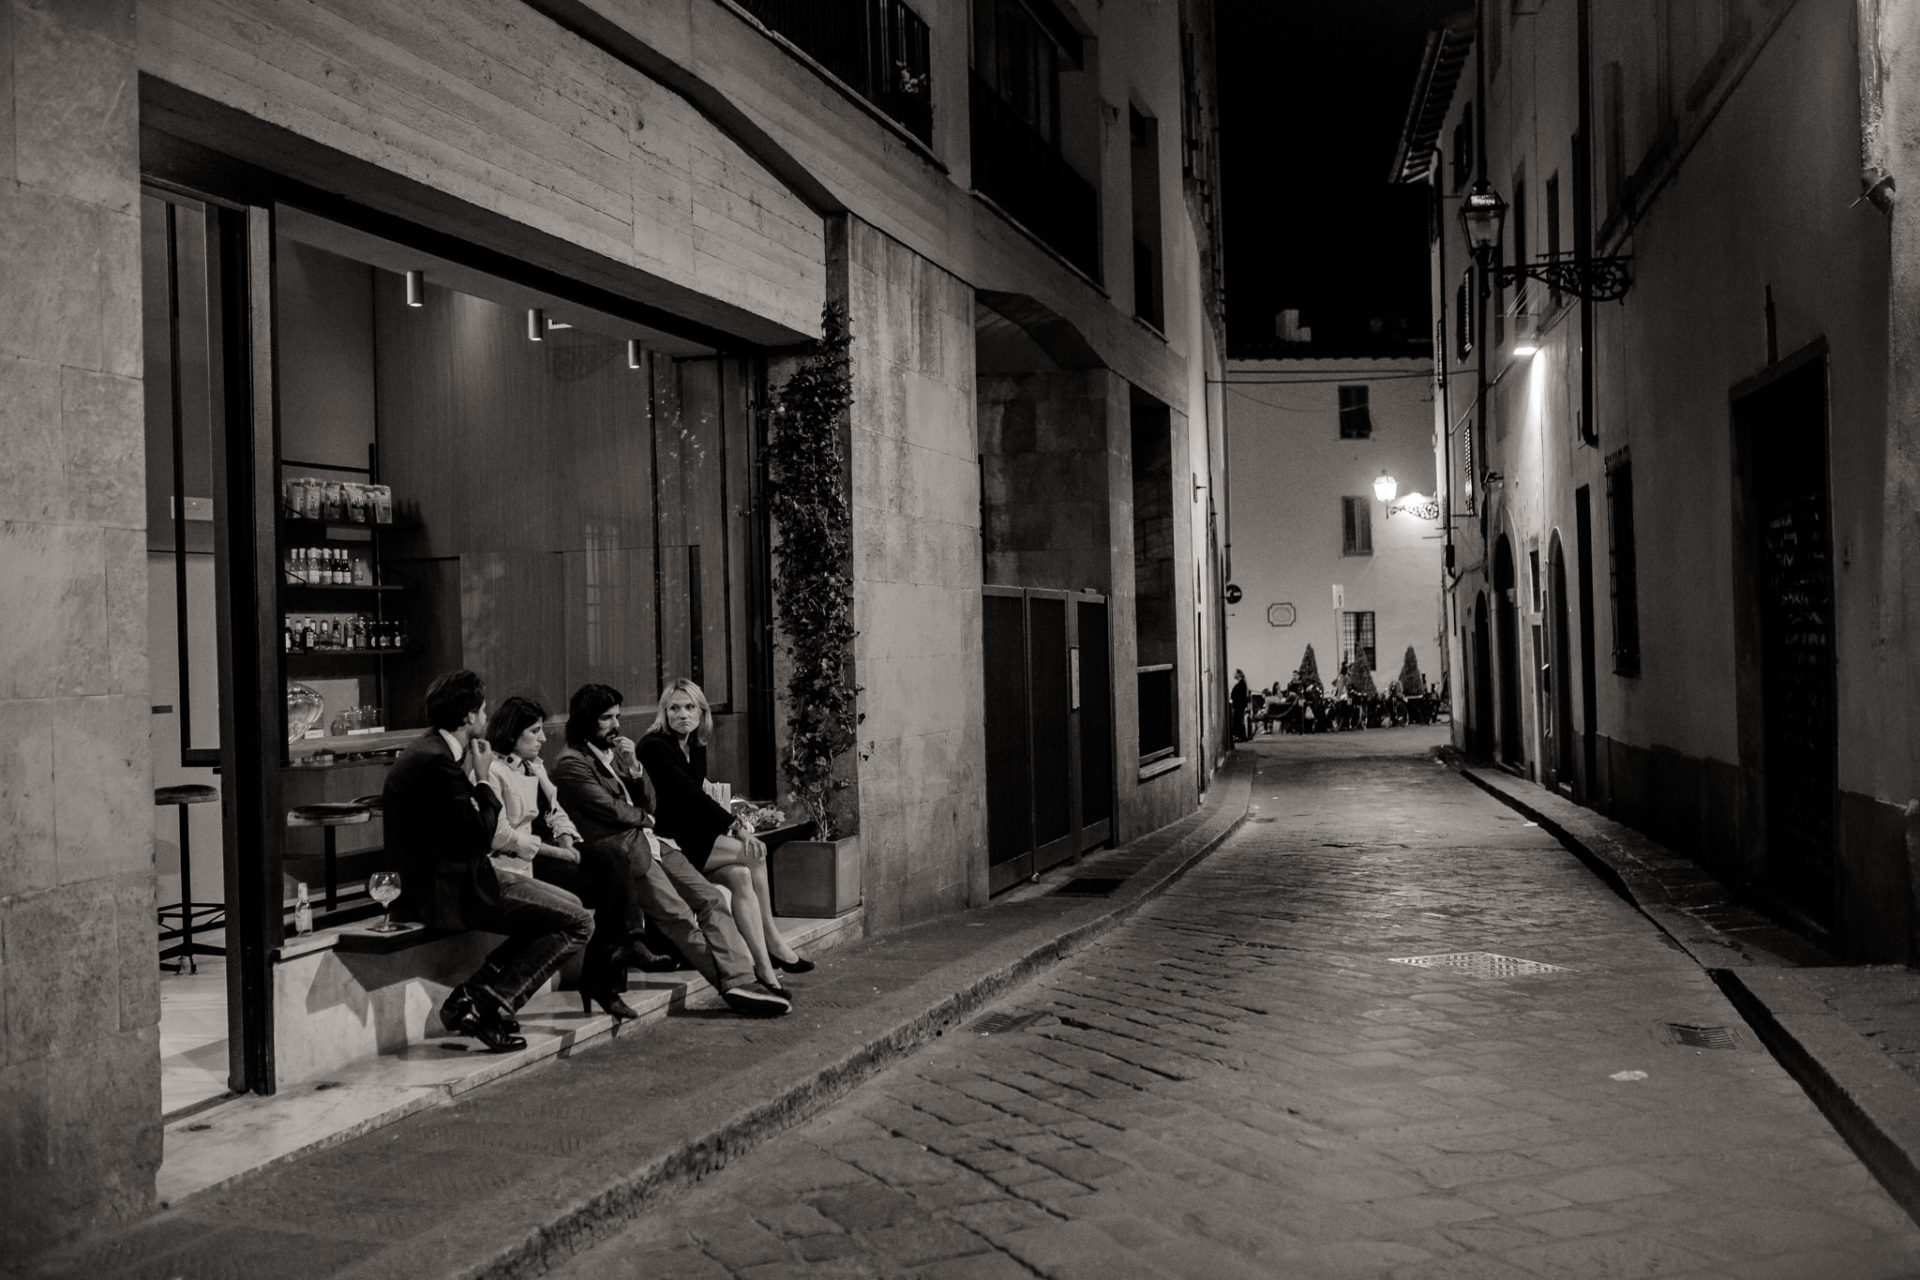 wedding photographer tuscany-italy road trip with dog-florence by night